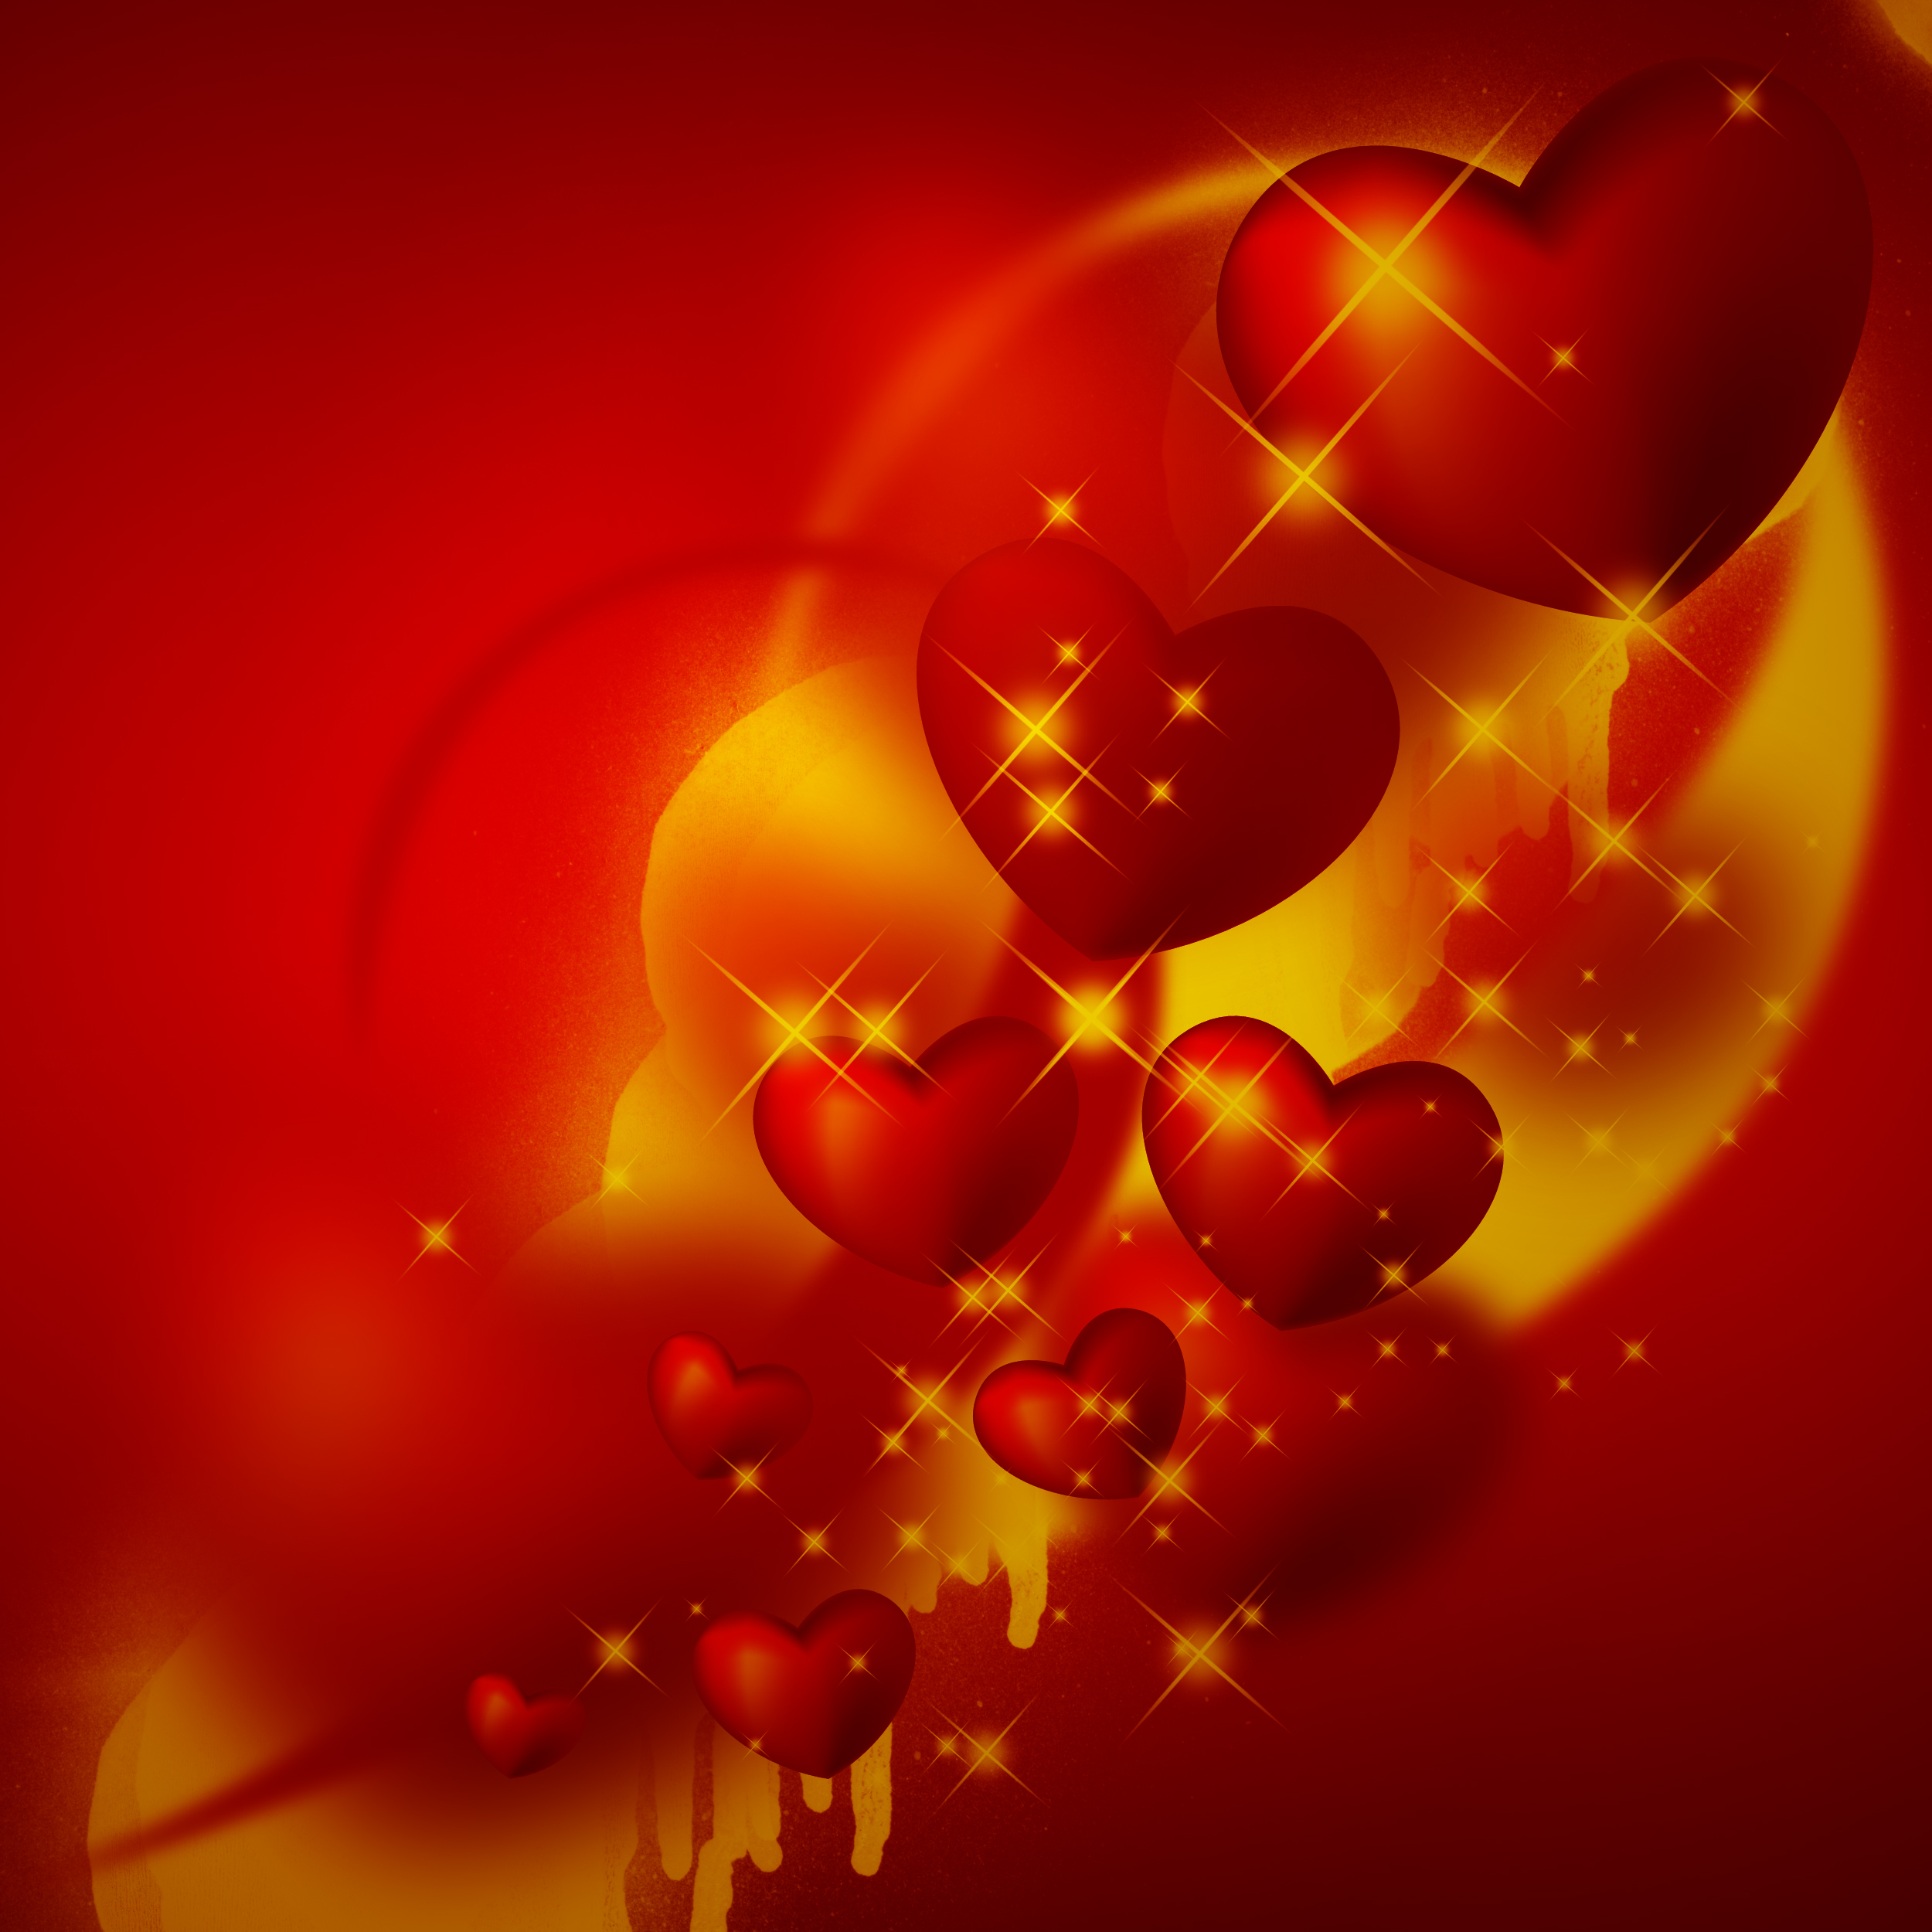 Free Valentine Backgrounds - Free Downloads and Add-ons ...